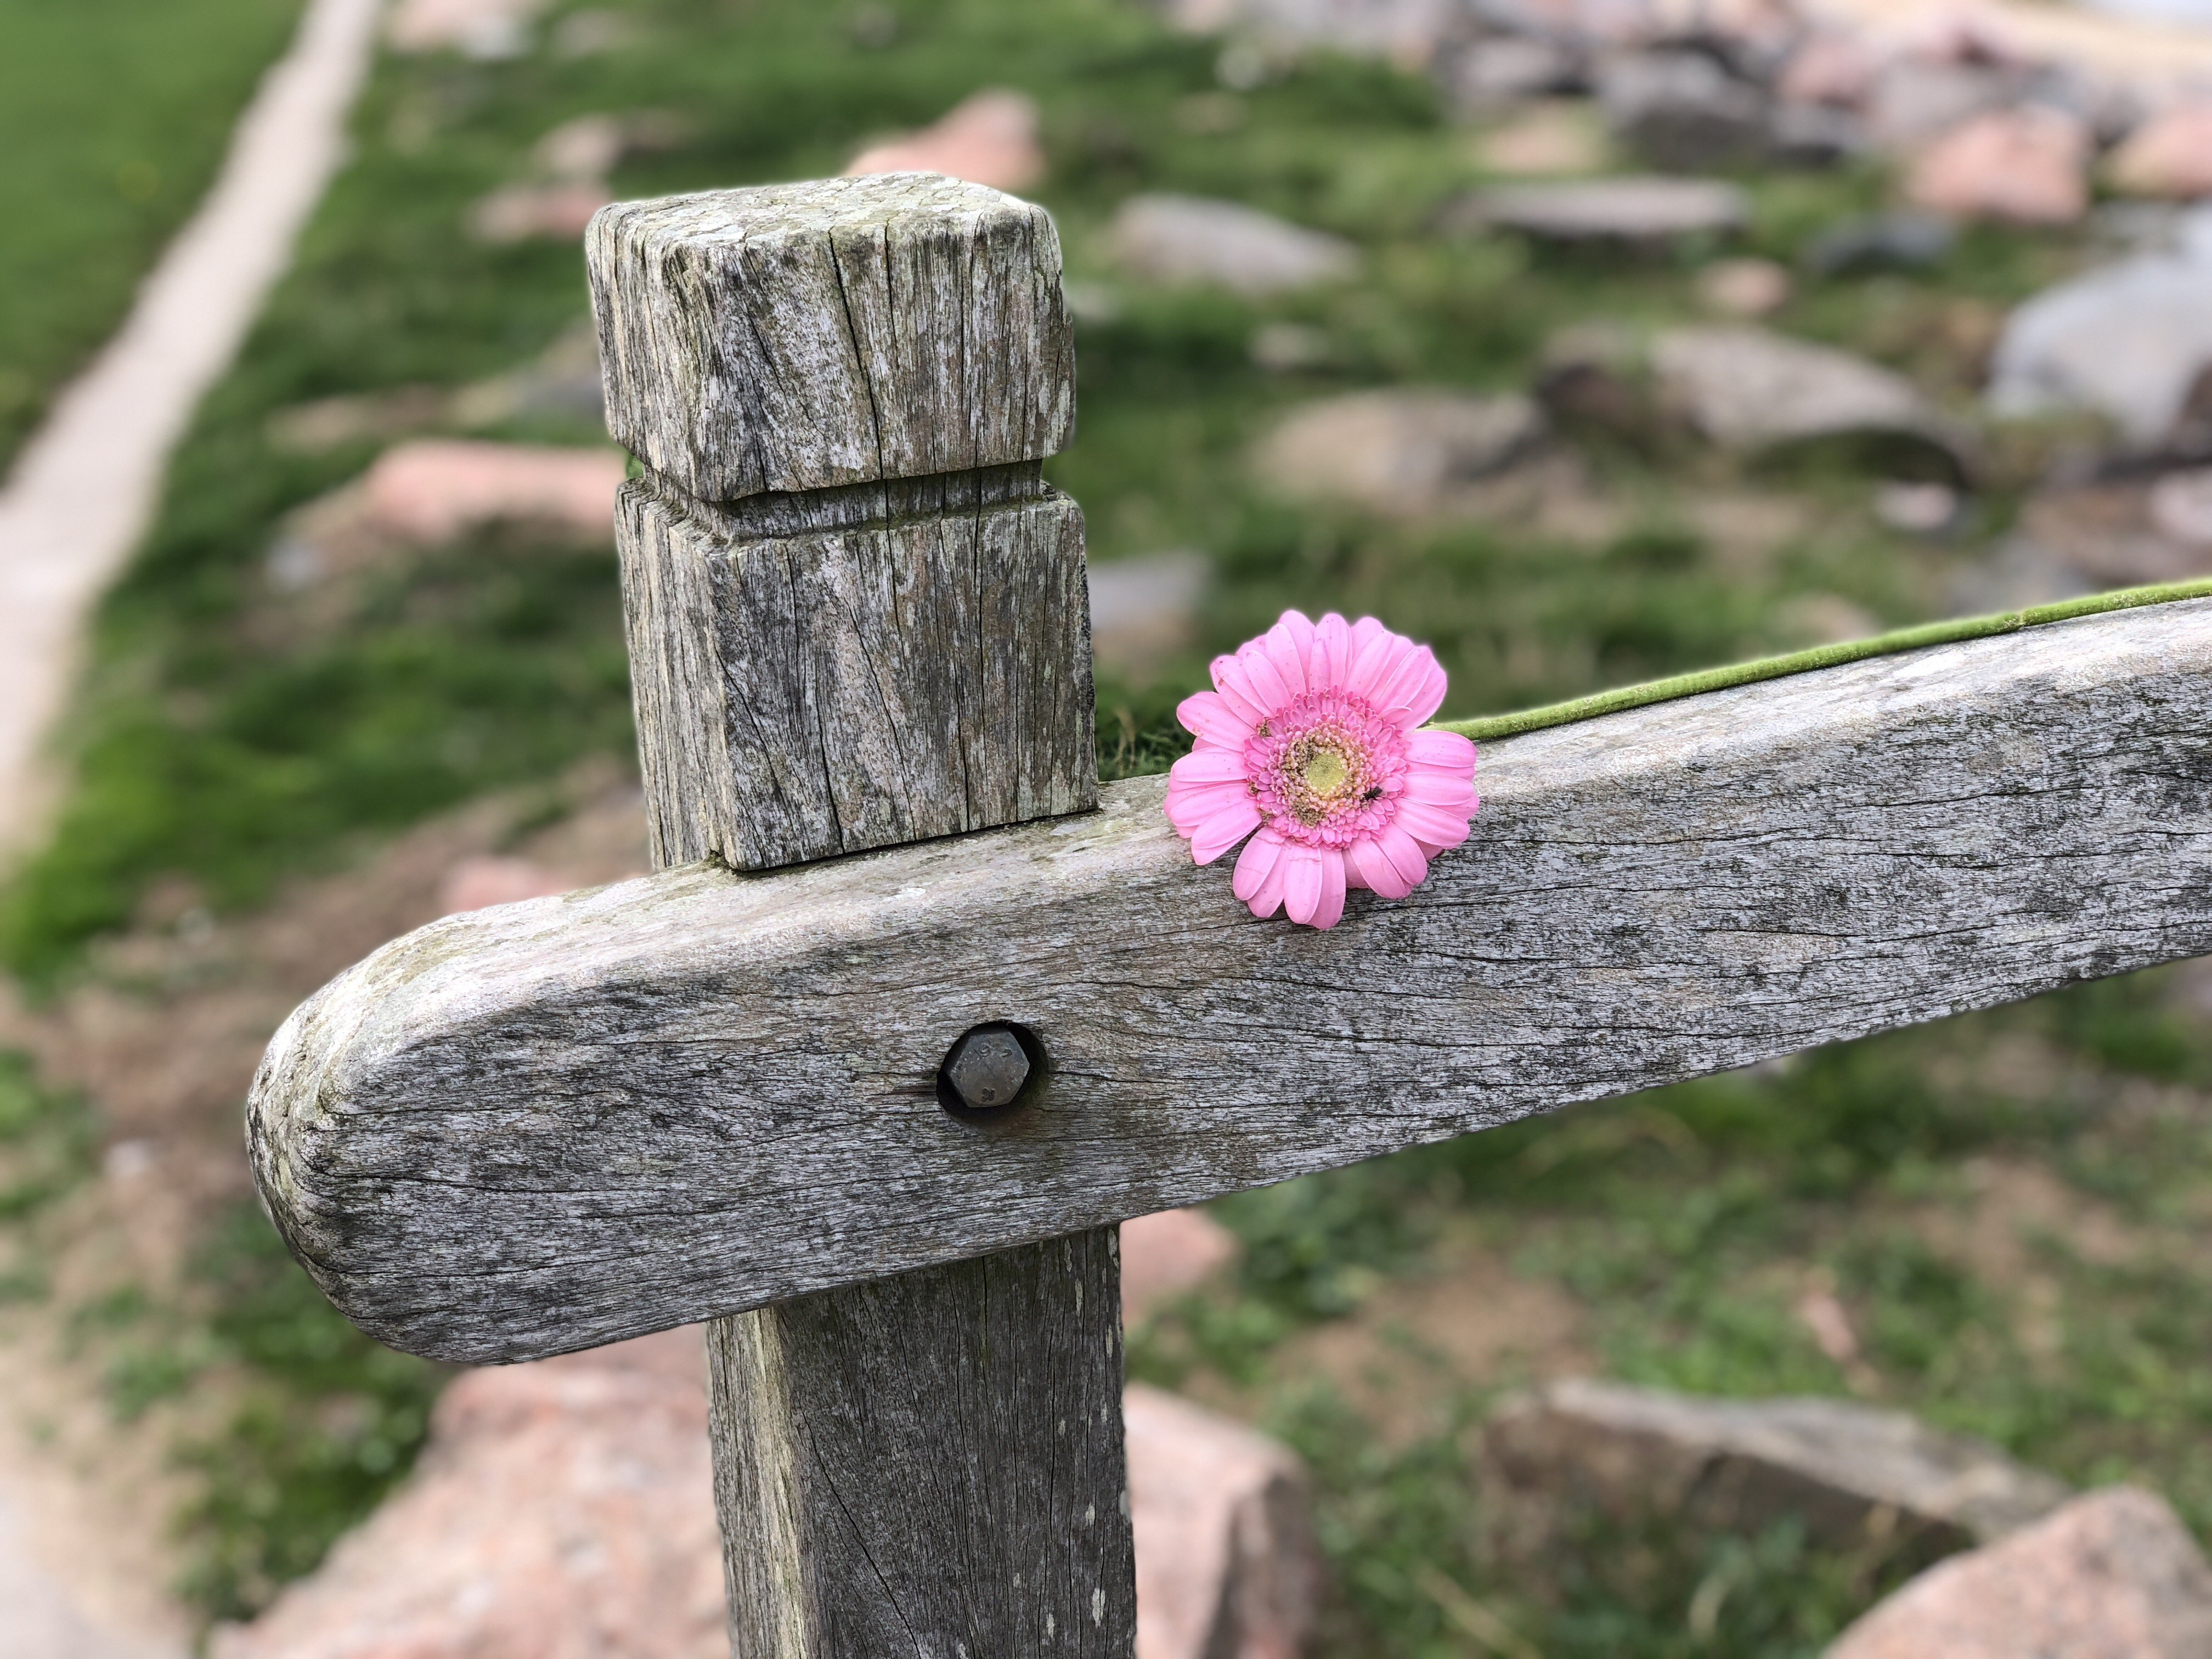 a flower on a fence